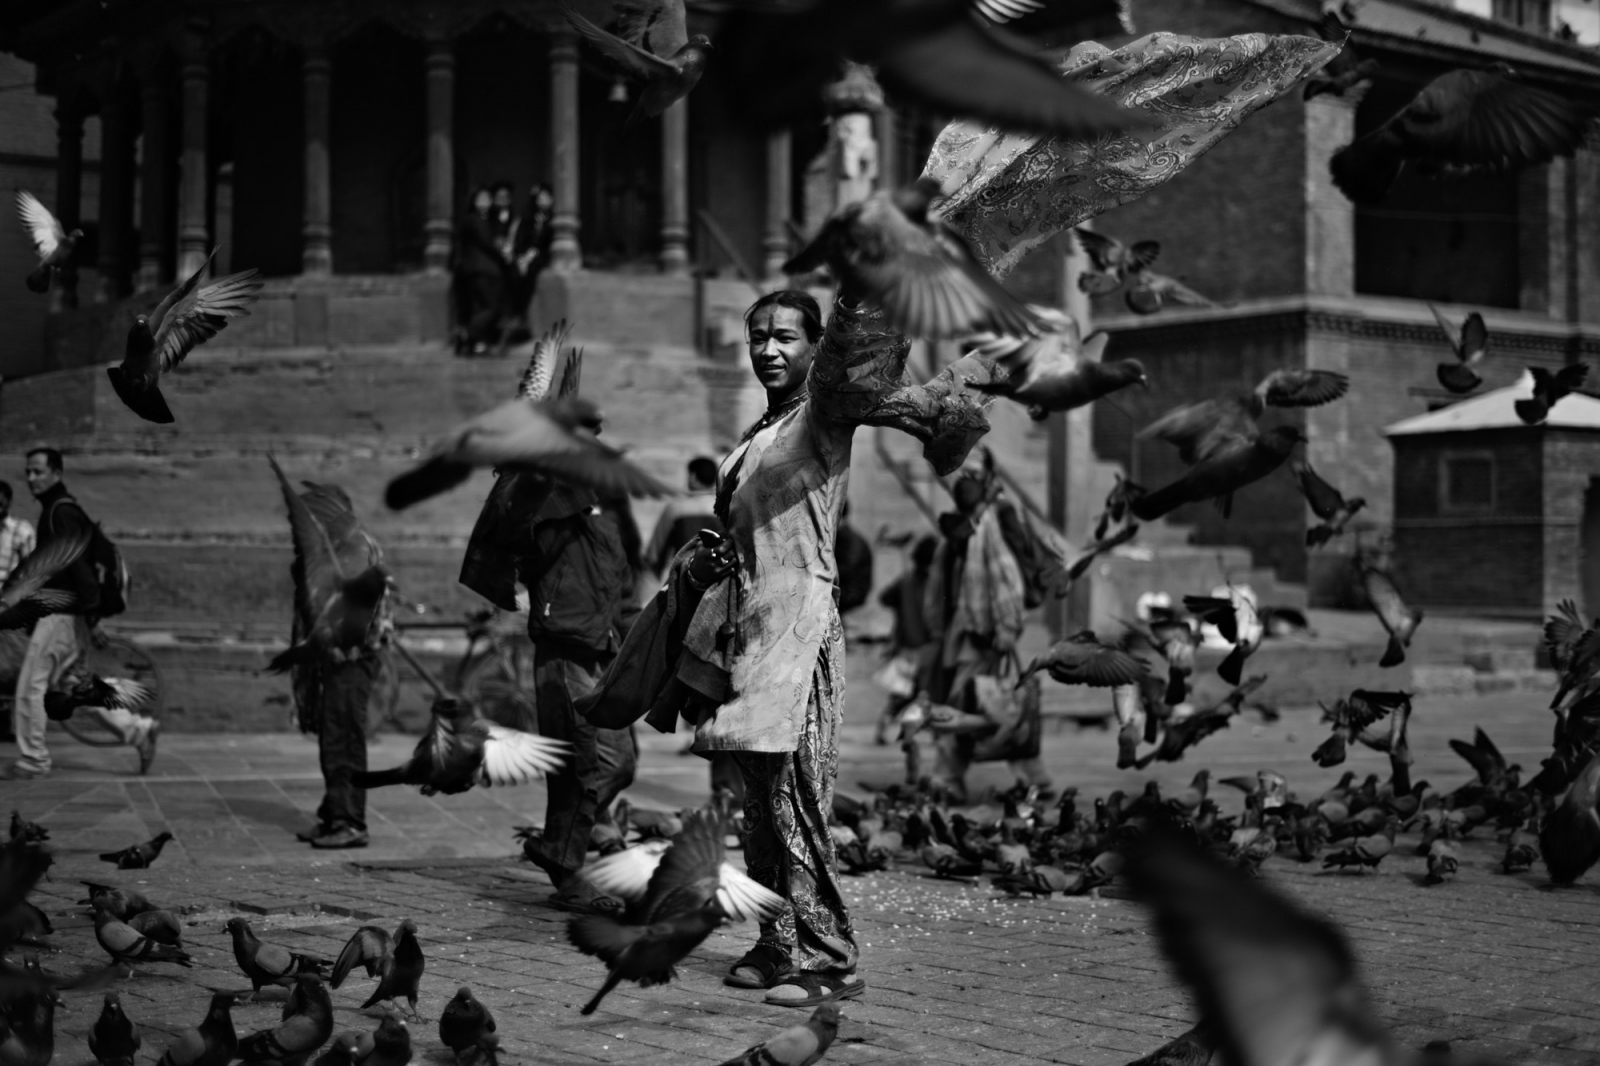 A woman walks among pigeons in Kathmandu's durbar square.